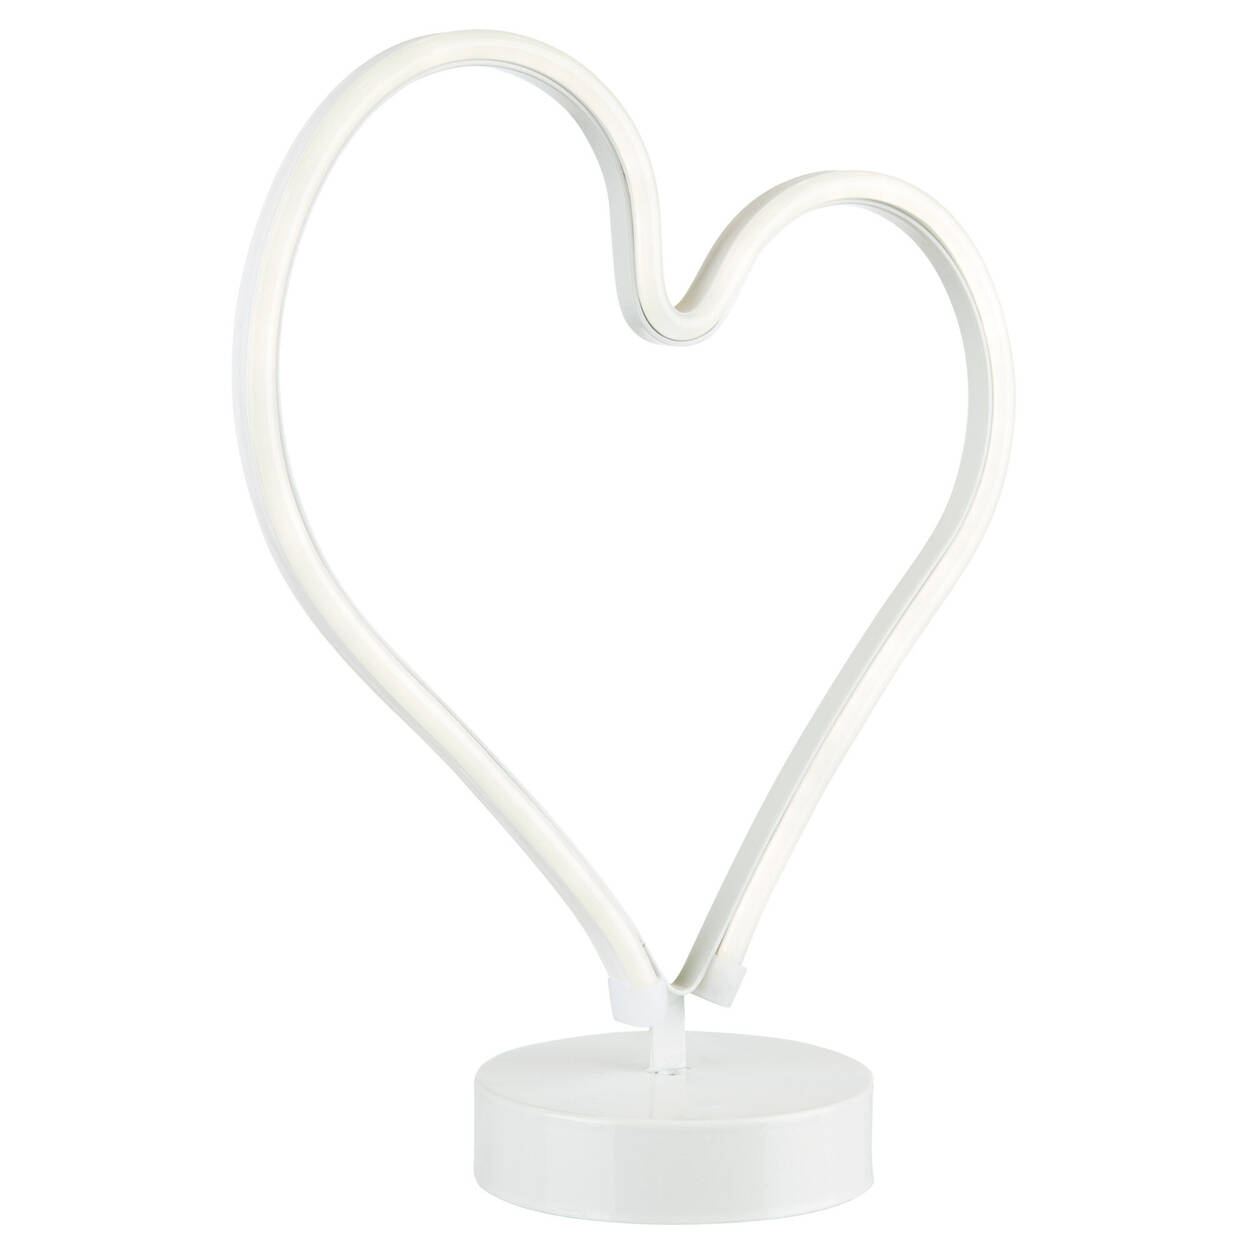 Heart Stand with LED lights